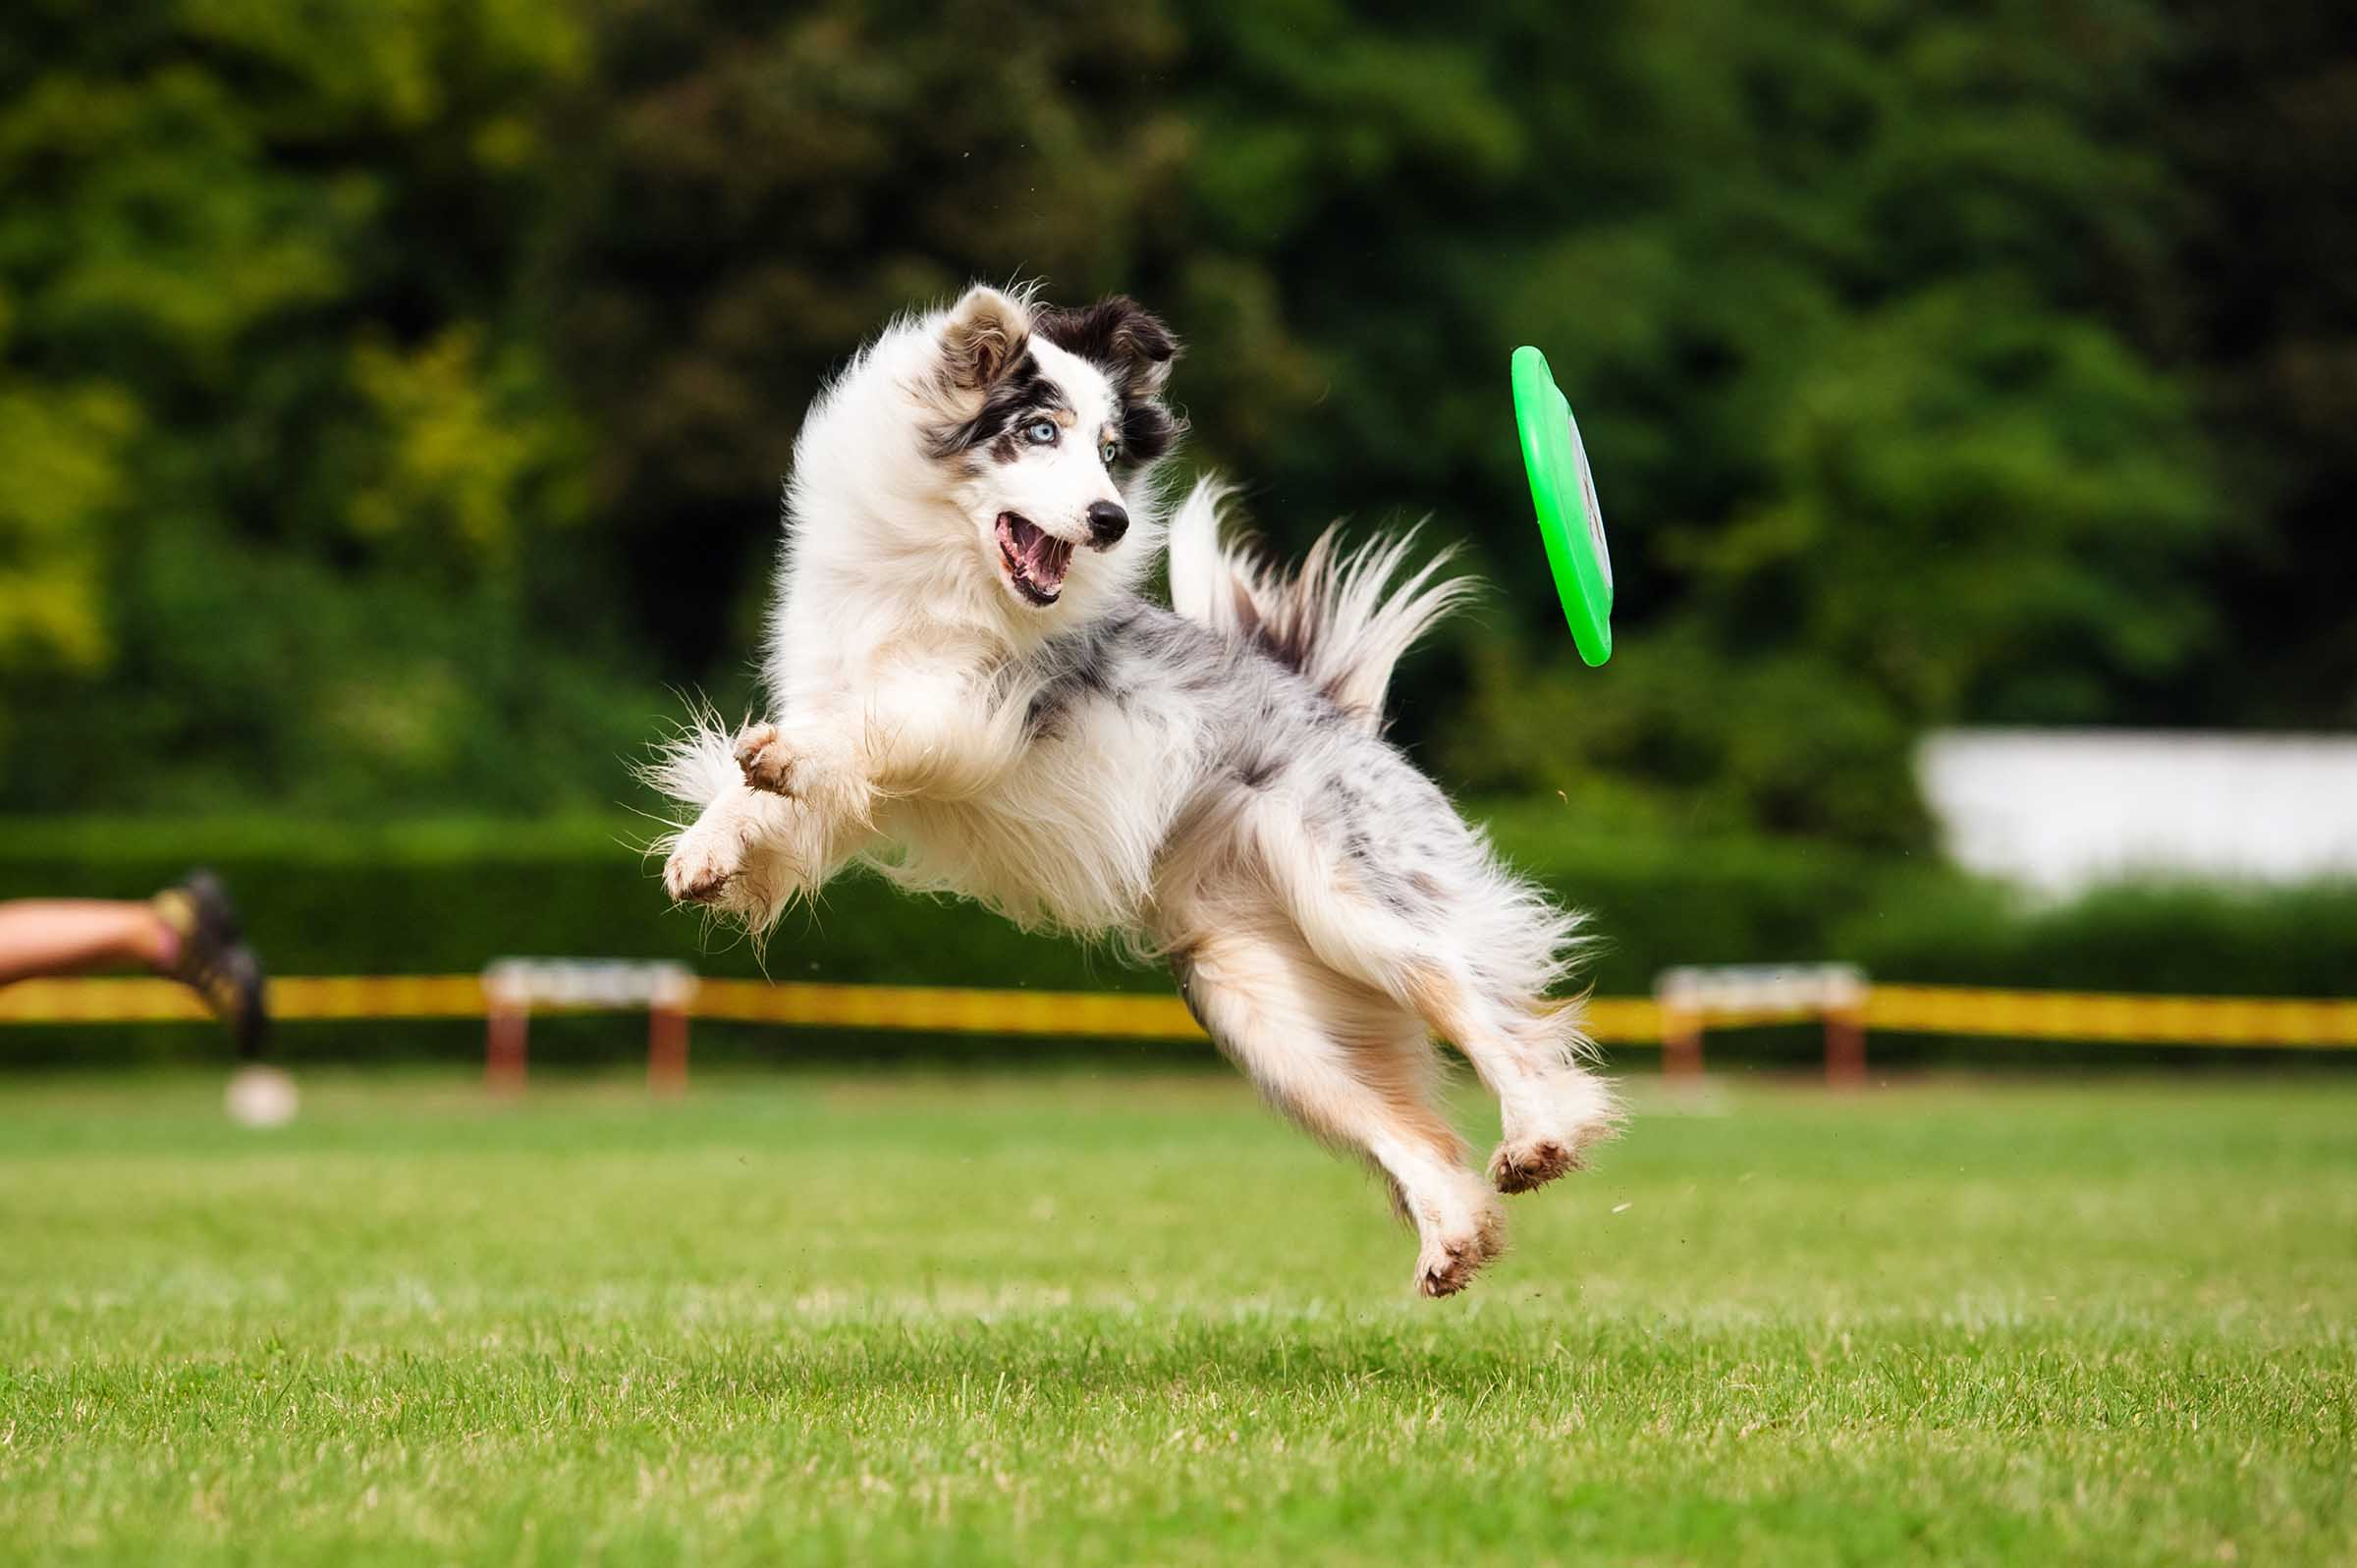 Dog flying through air to catch frisbee disc